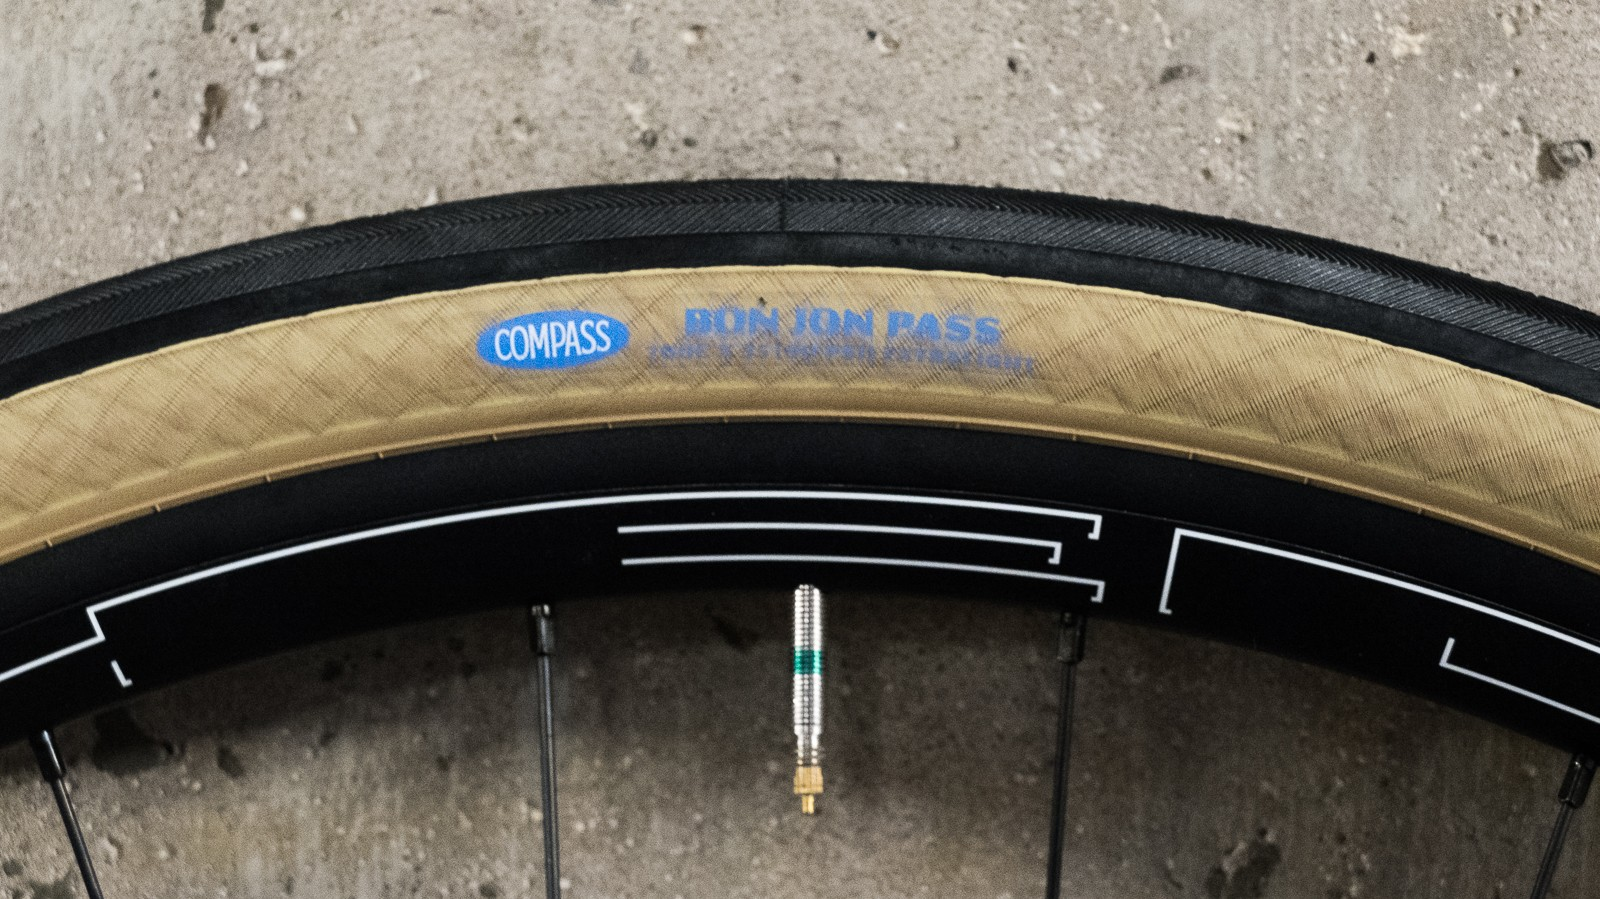 The tires are named after a remote, gravel road in Washington state